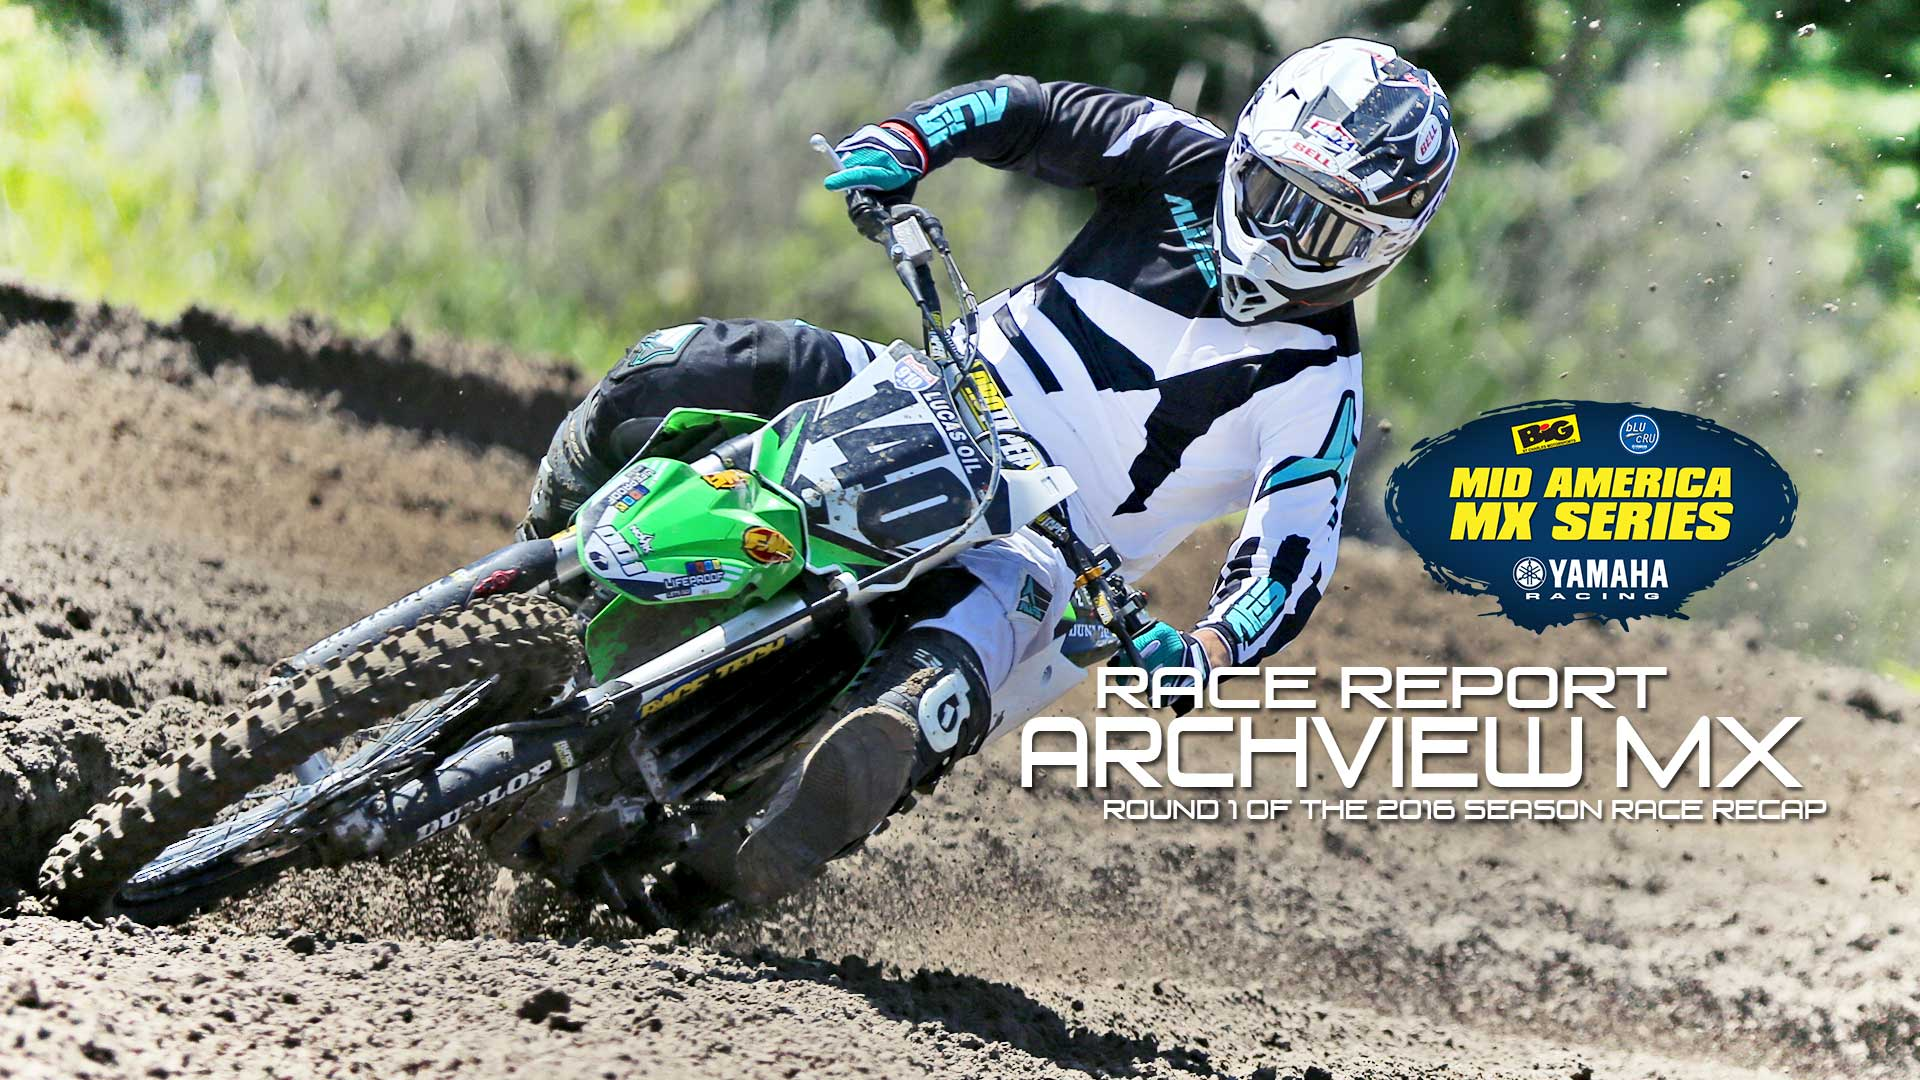 Race Report: Mid-America Motocross Series Archview Round 1